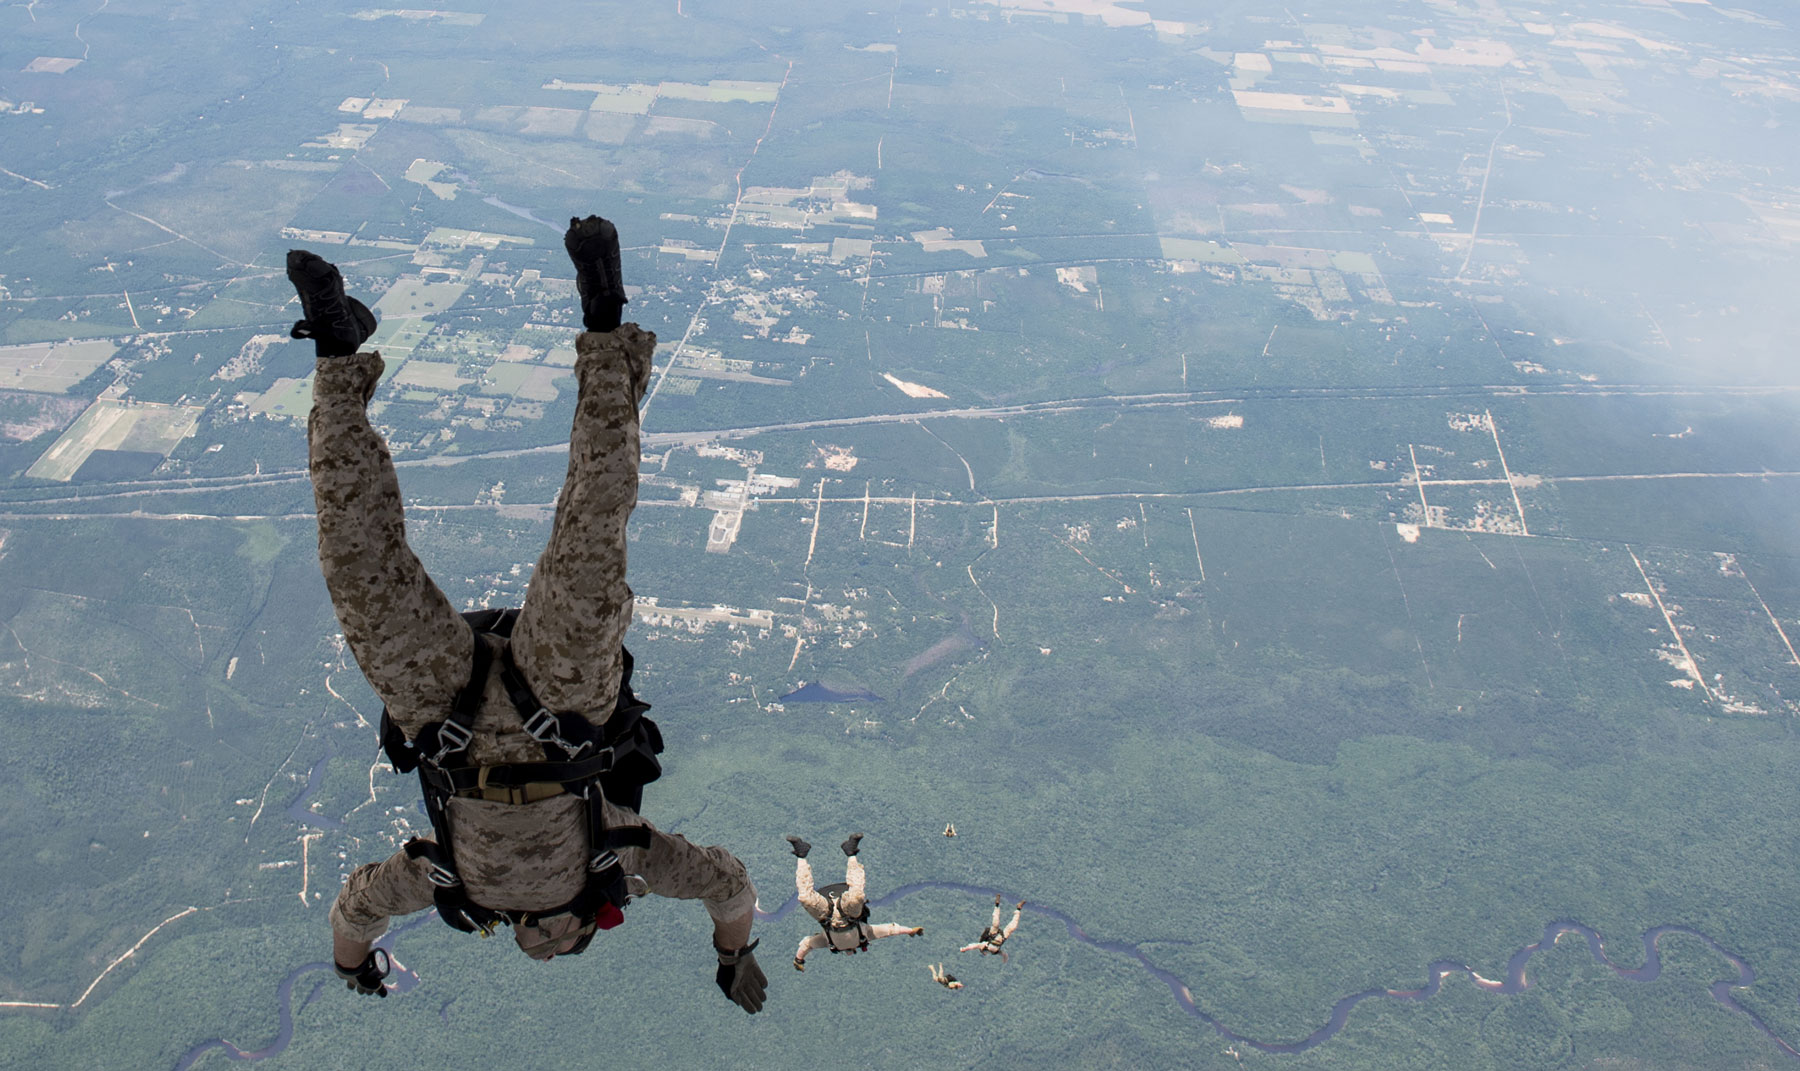 U.S. Navy Sea, Air, and Land Team Members conduct military free fall operations flying aboard a U.S. Air Force Special Operations Command MC-130 Talon II flown by the 19th Special Operations Squadron.